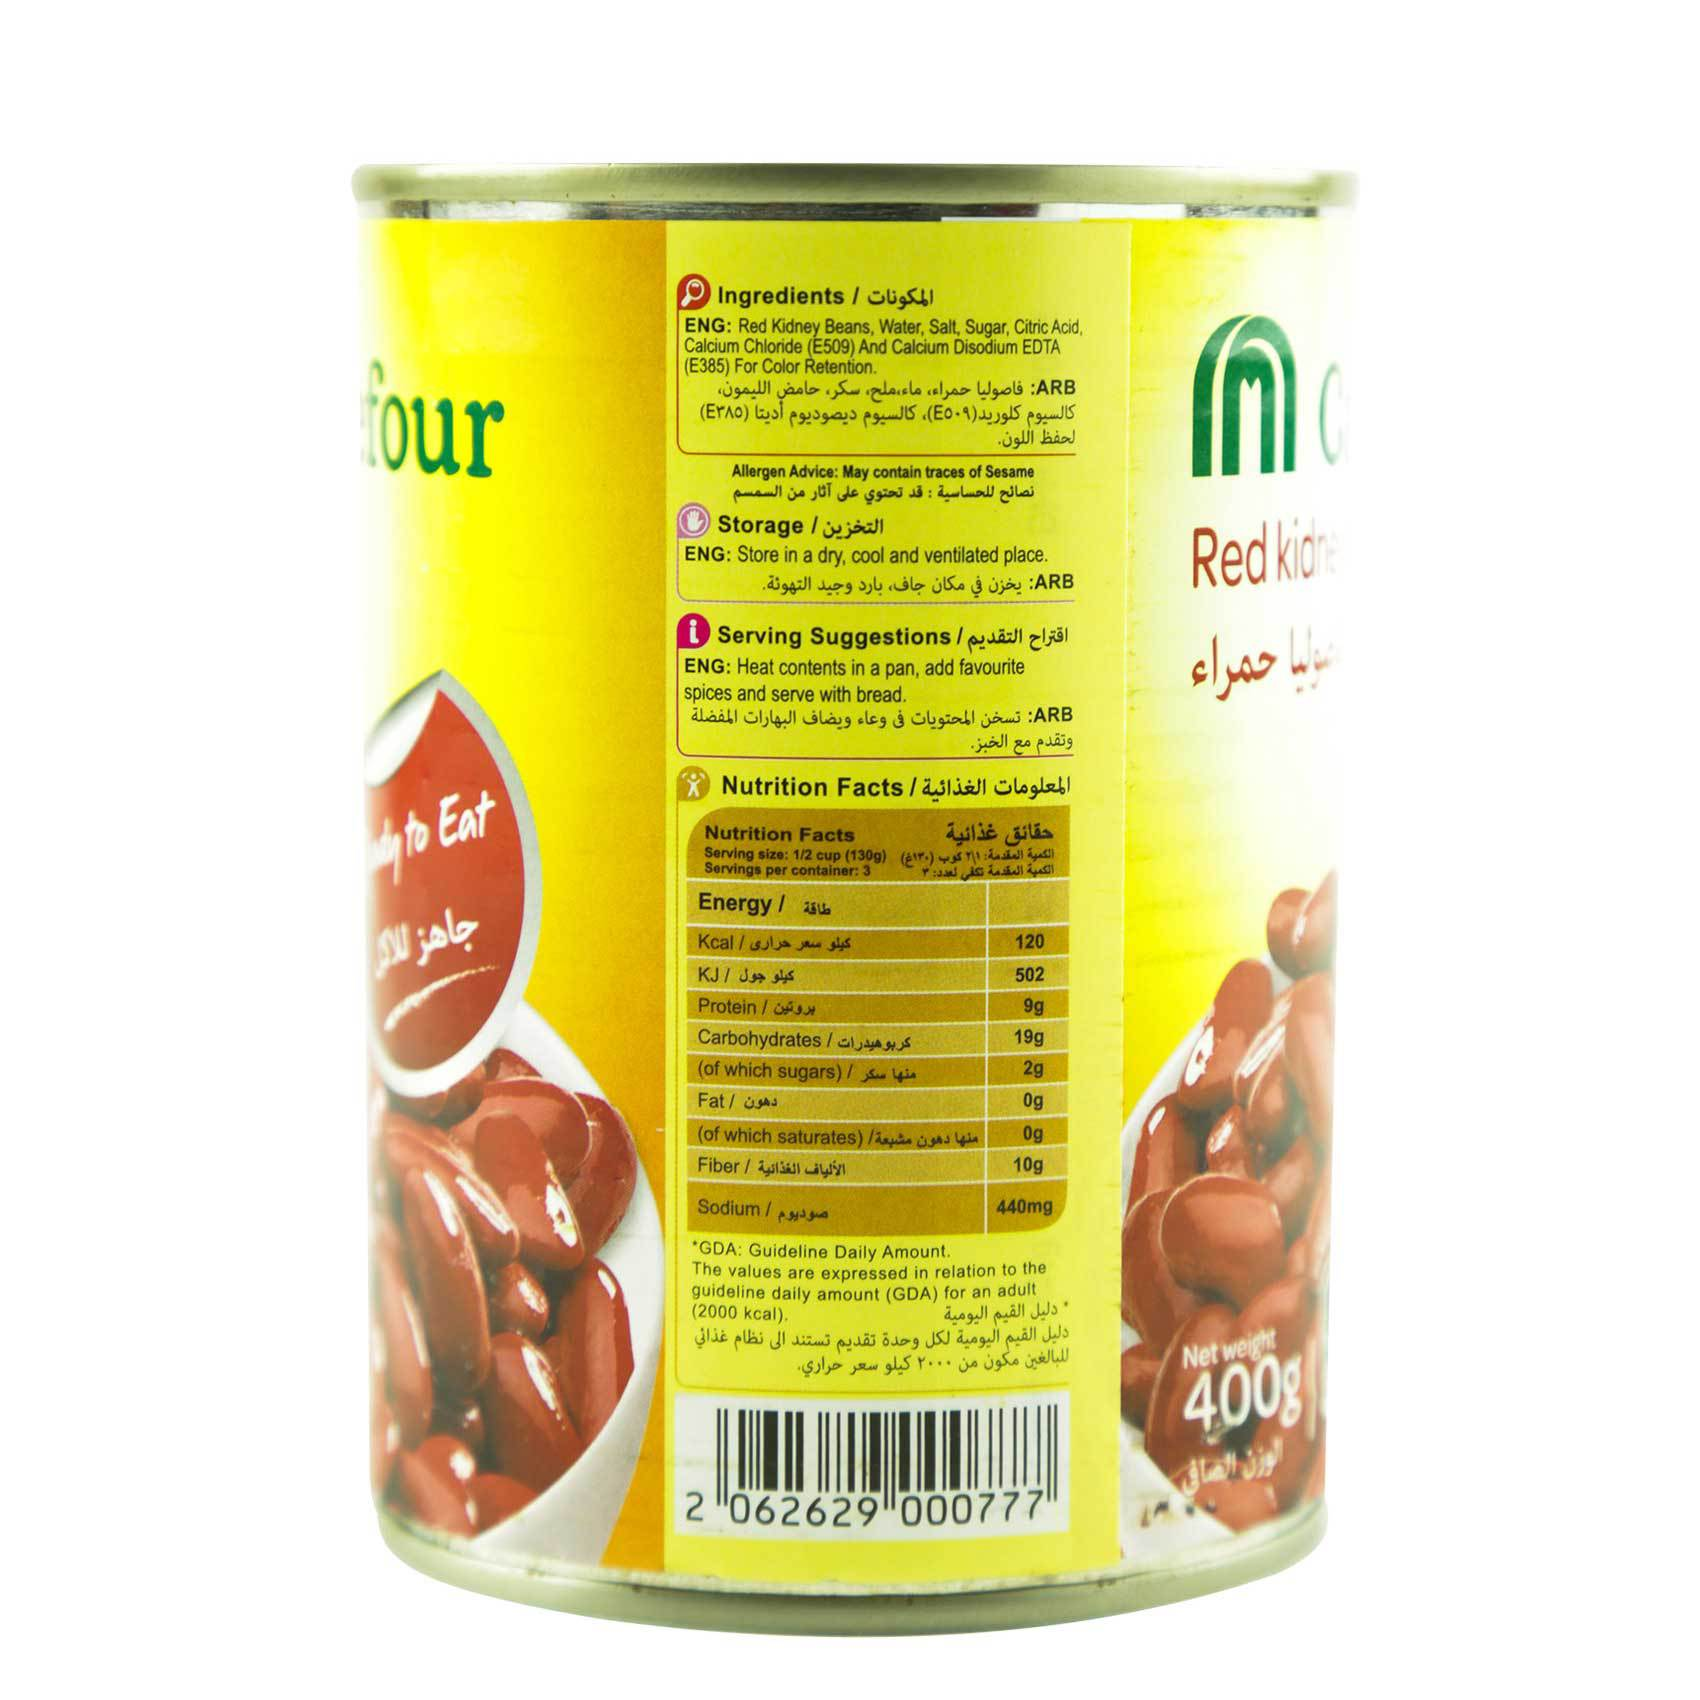 CRF RED KIDNEY BEANS 400G